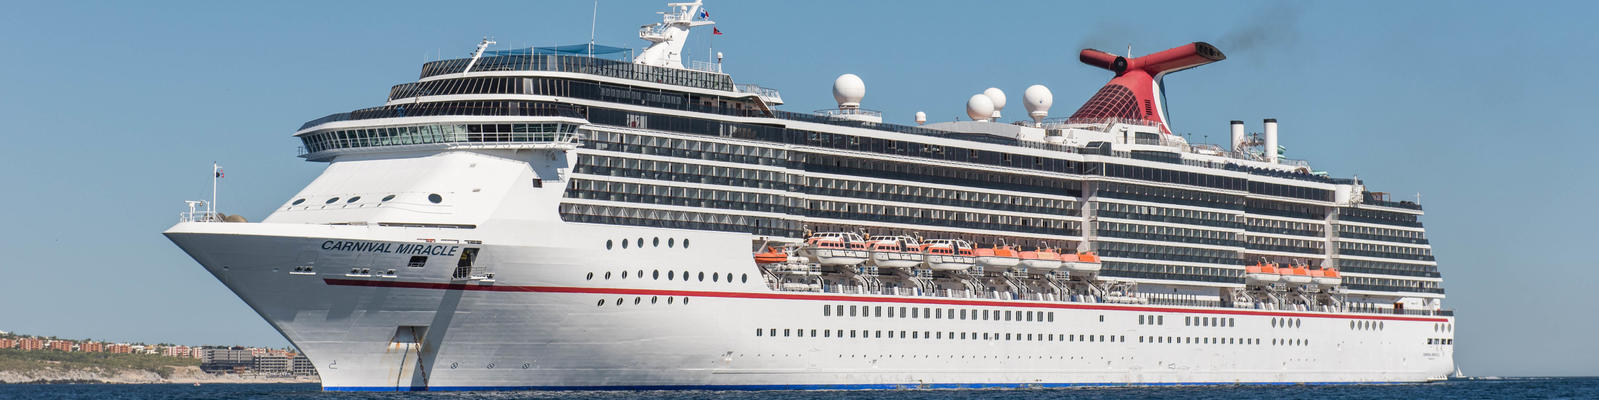 Carnival Miracle (Photo: Cruise Critic)